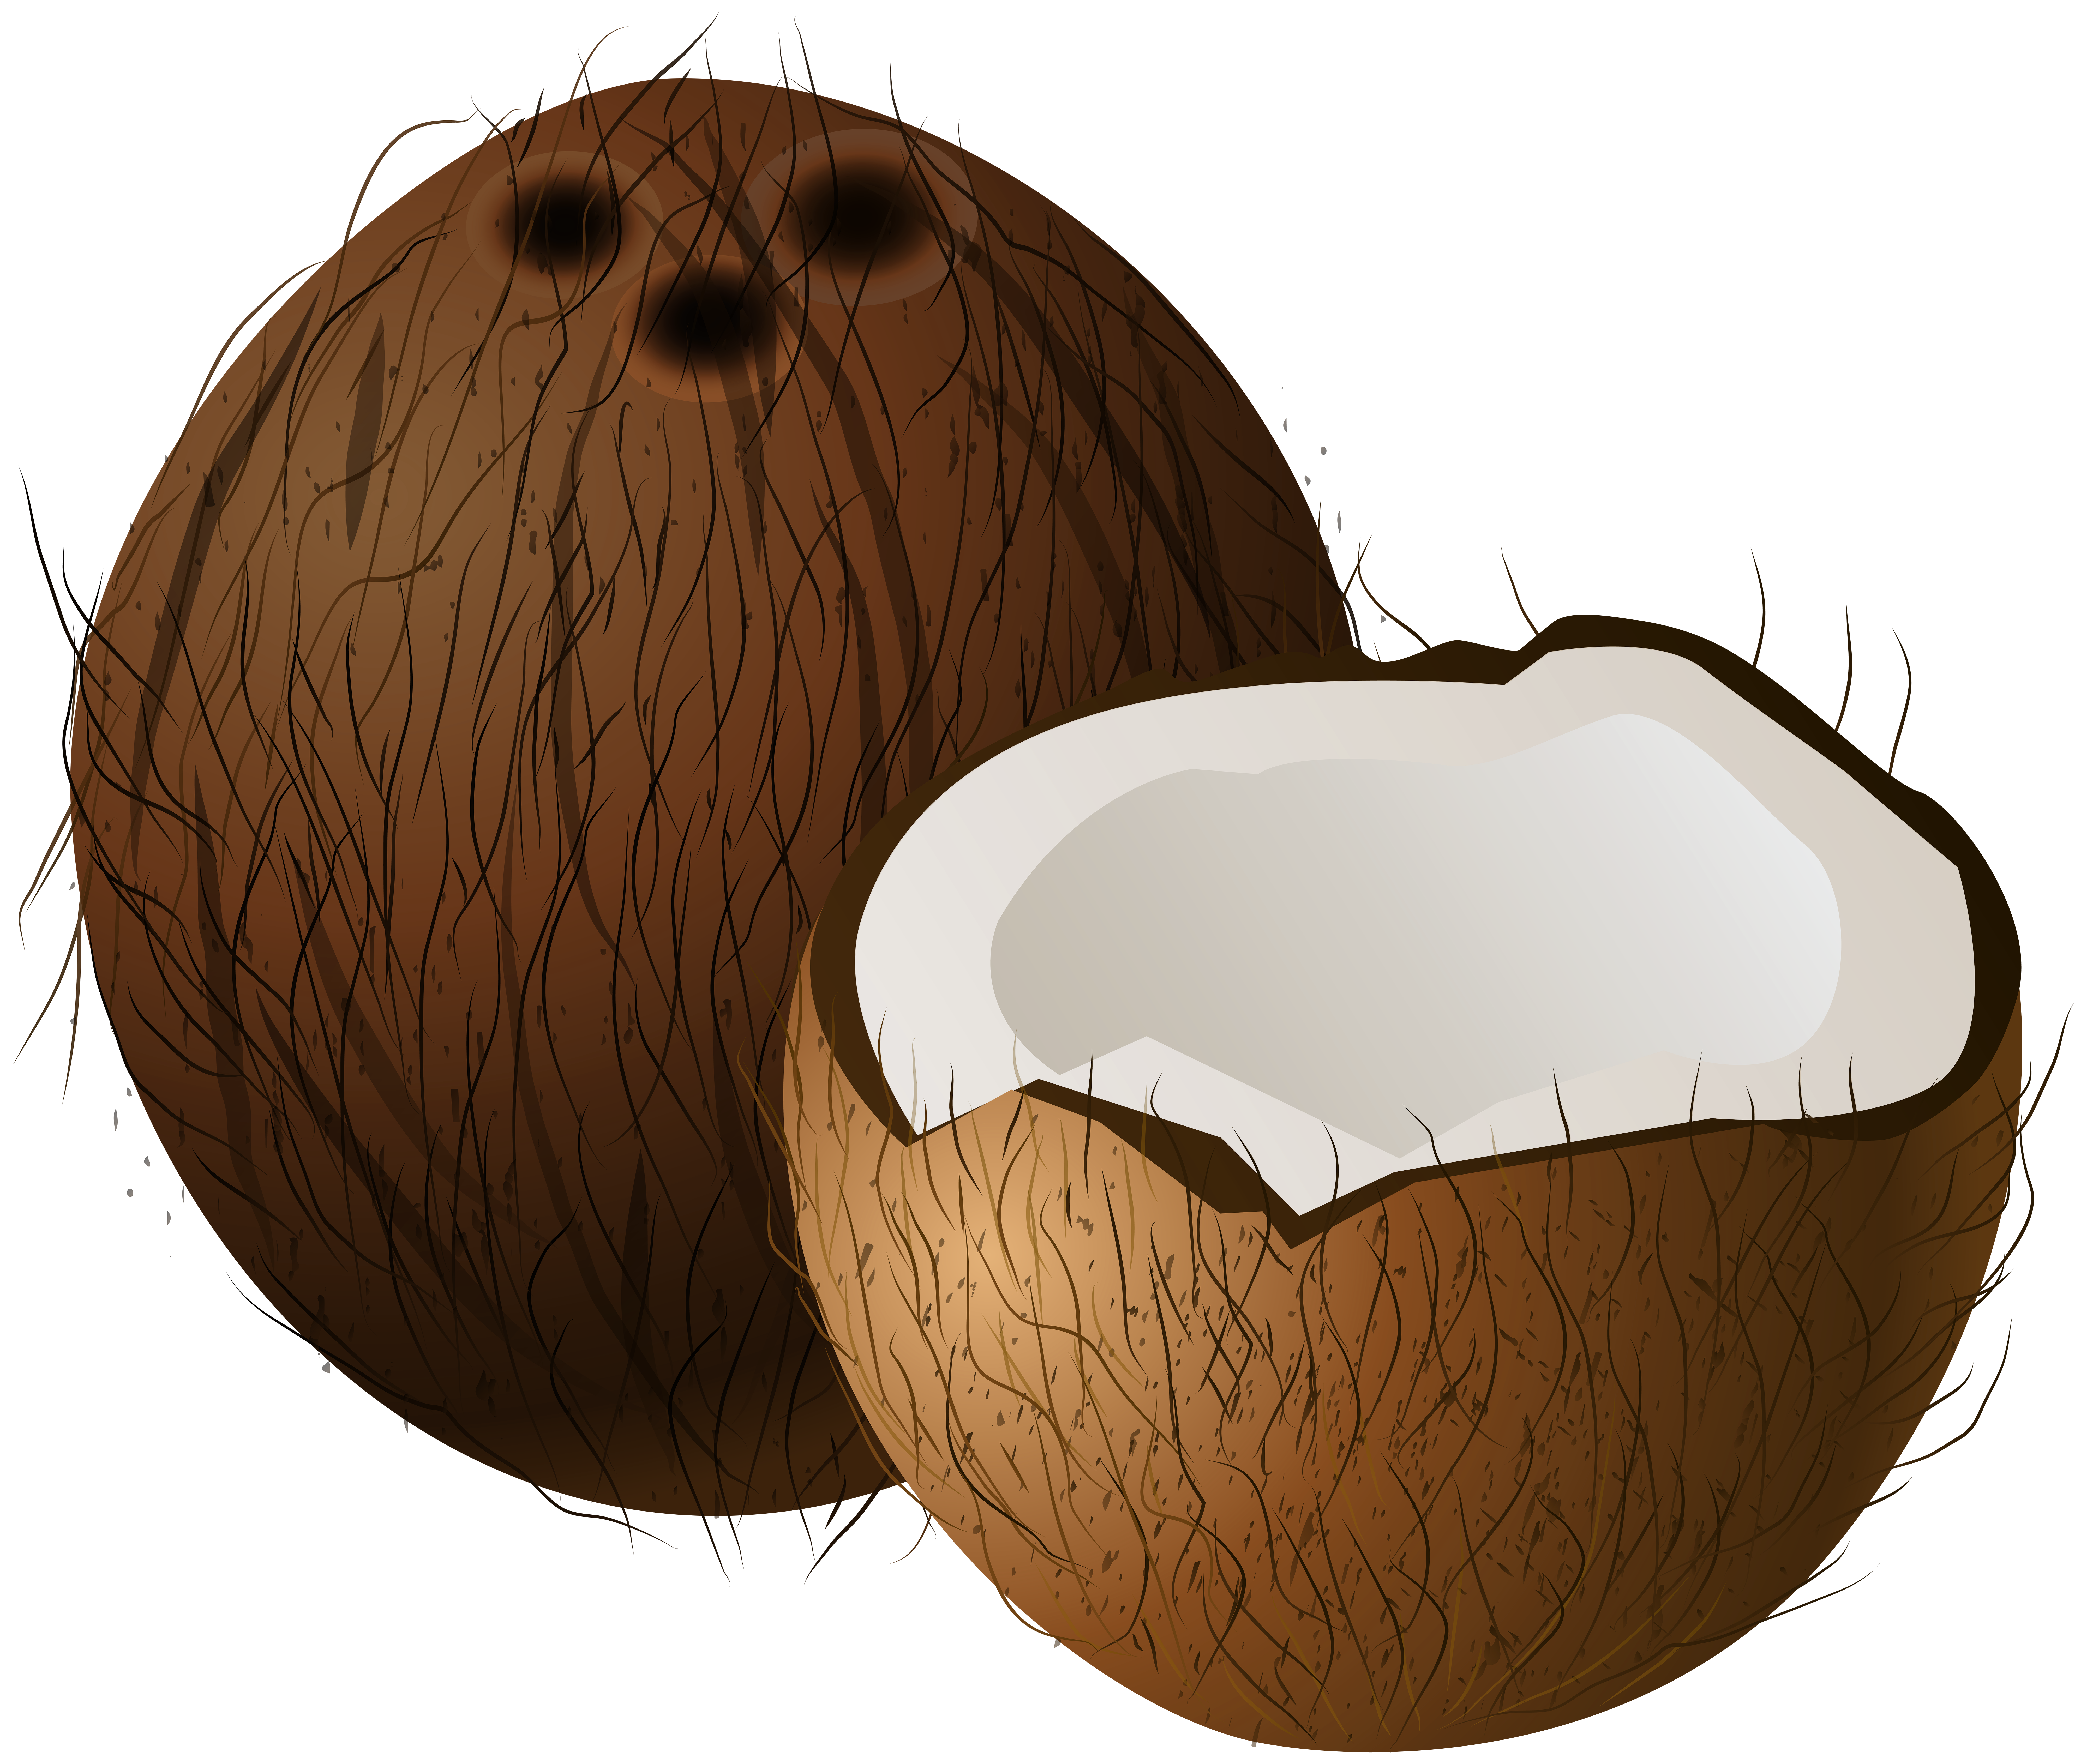 Clipart coconut svg black and white library Coconuts PNG Clip Art - Best WEB Clipart svg black and white library